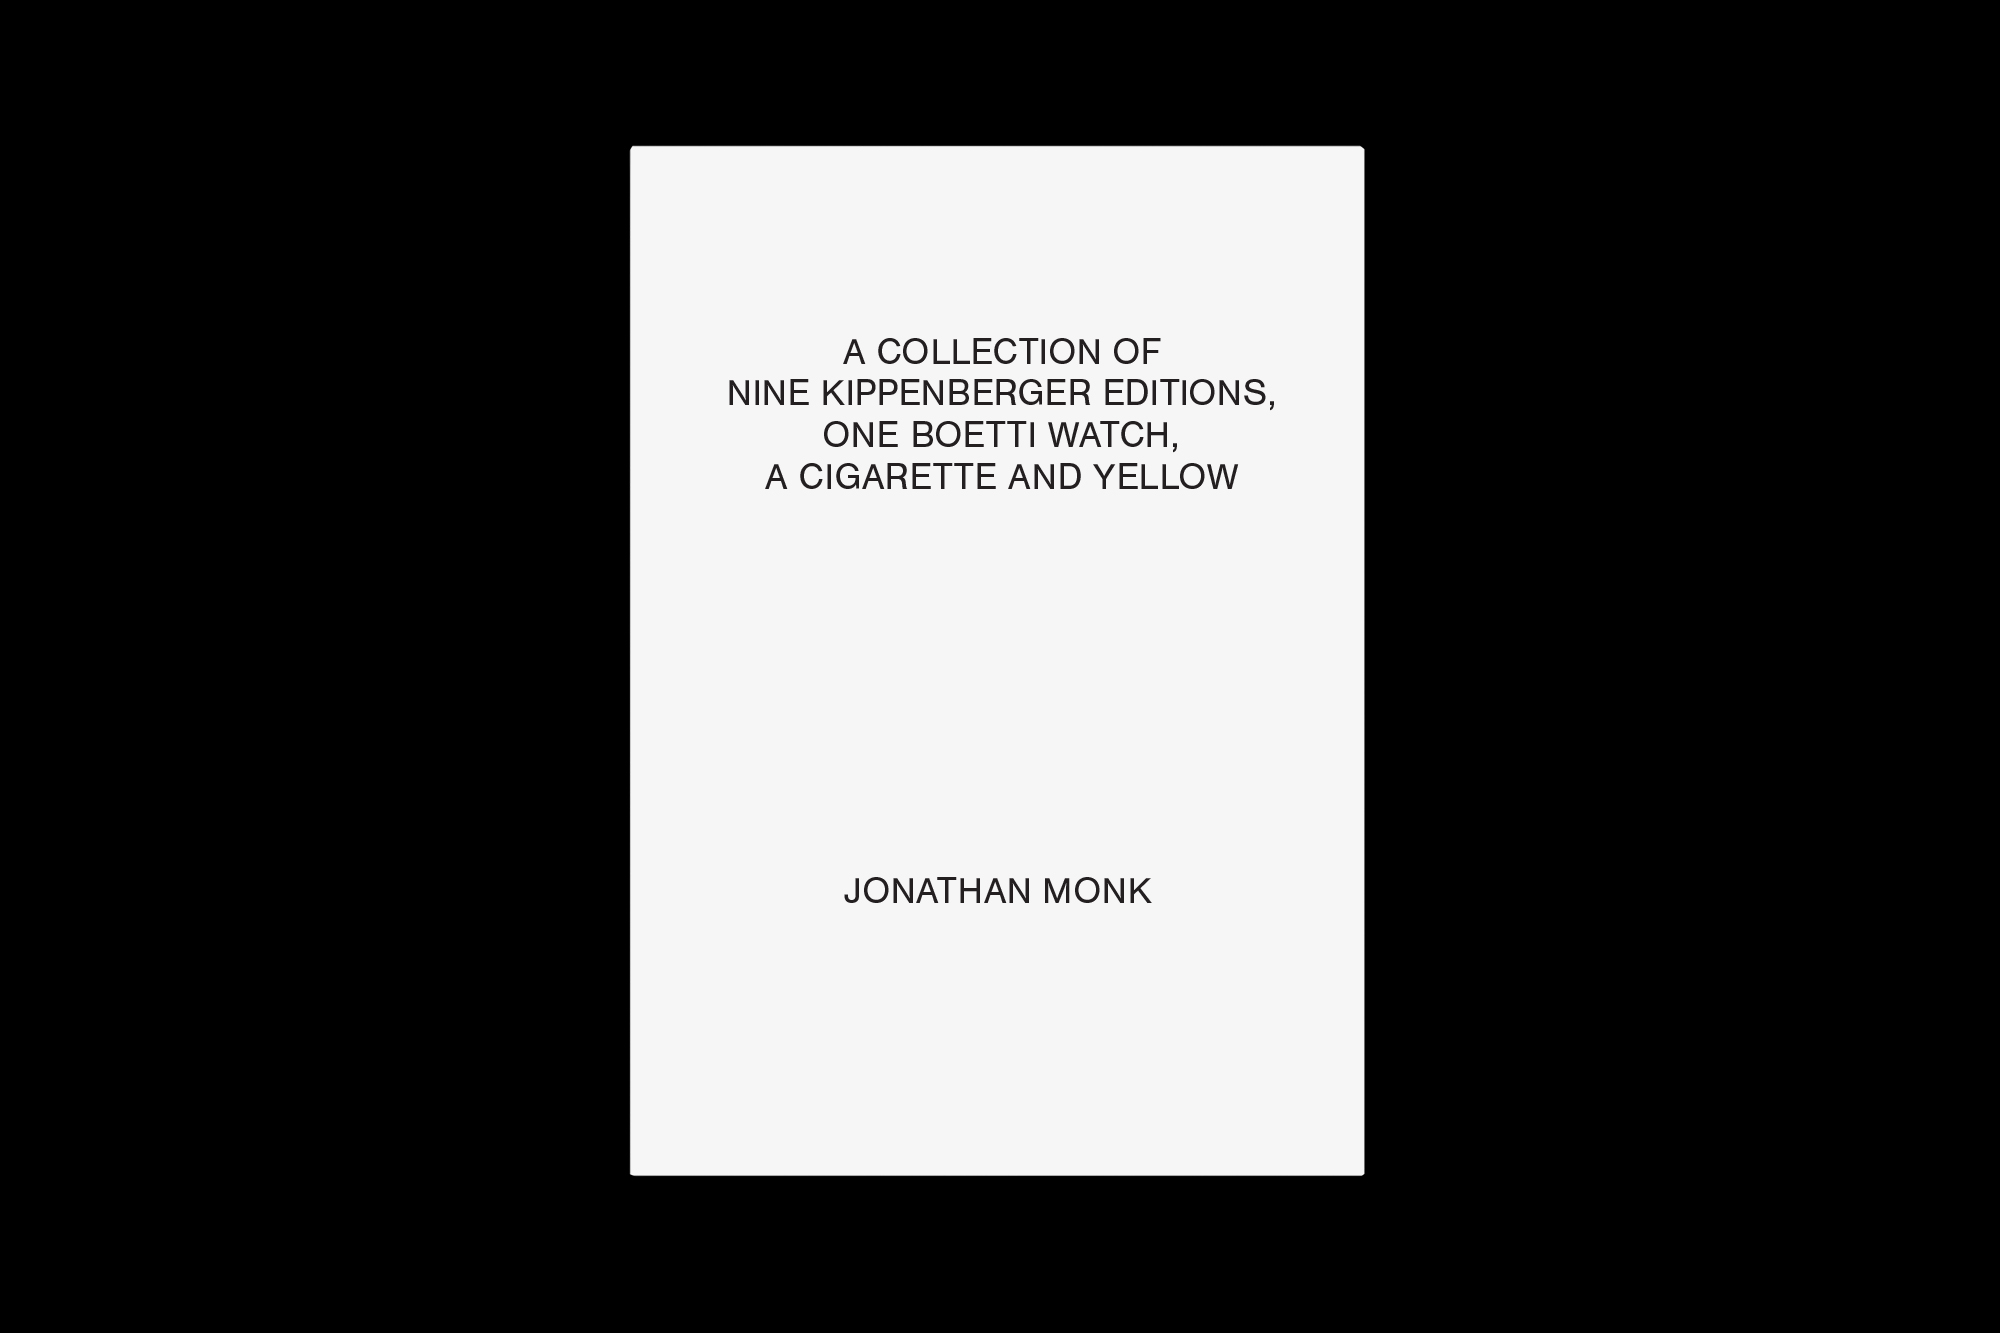 A collection of nine Kippenberger editions (…), Jonathan Monk